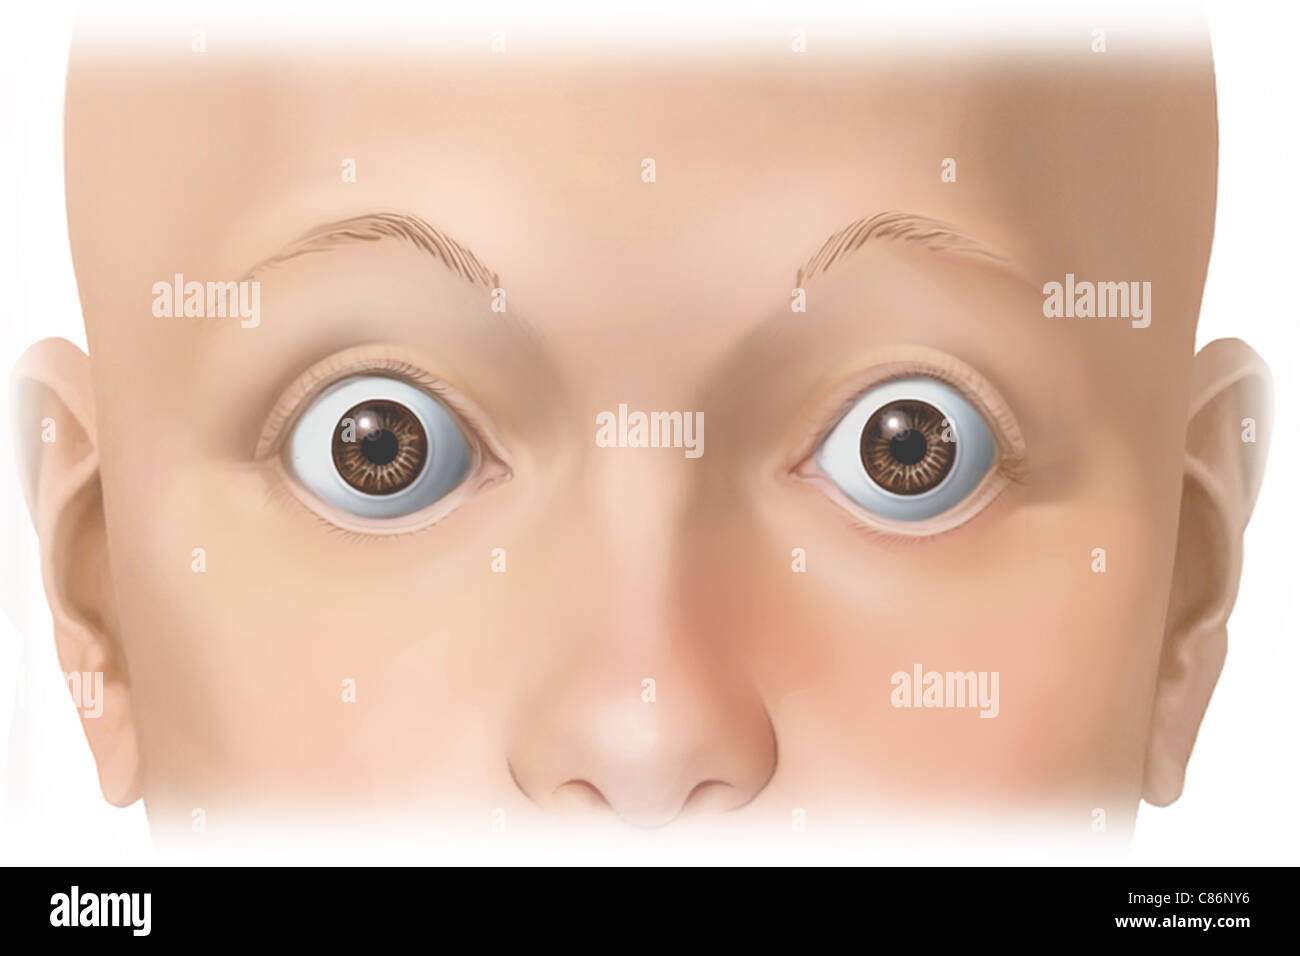 This stock medical image features an anterior (front) view of a female face with eyes wide open to expose the conjunctiva. - Stock Image